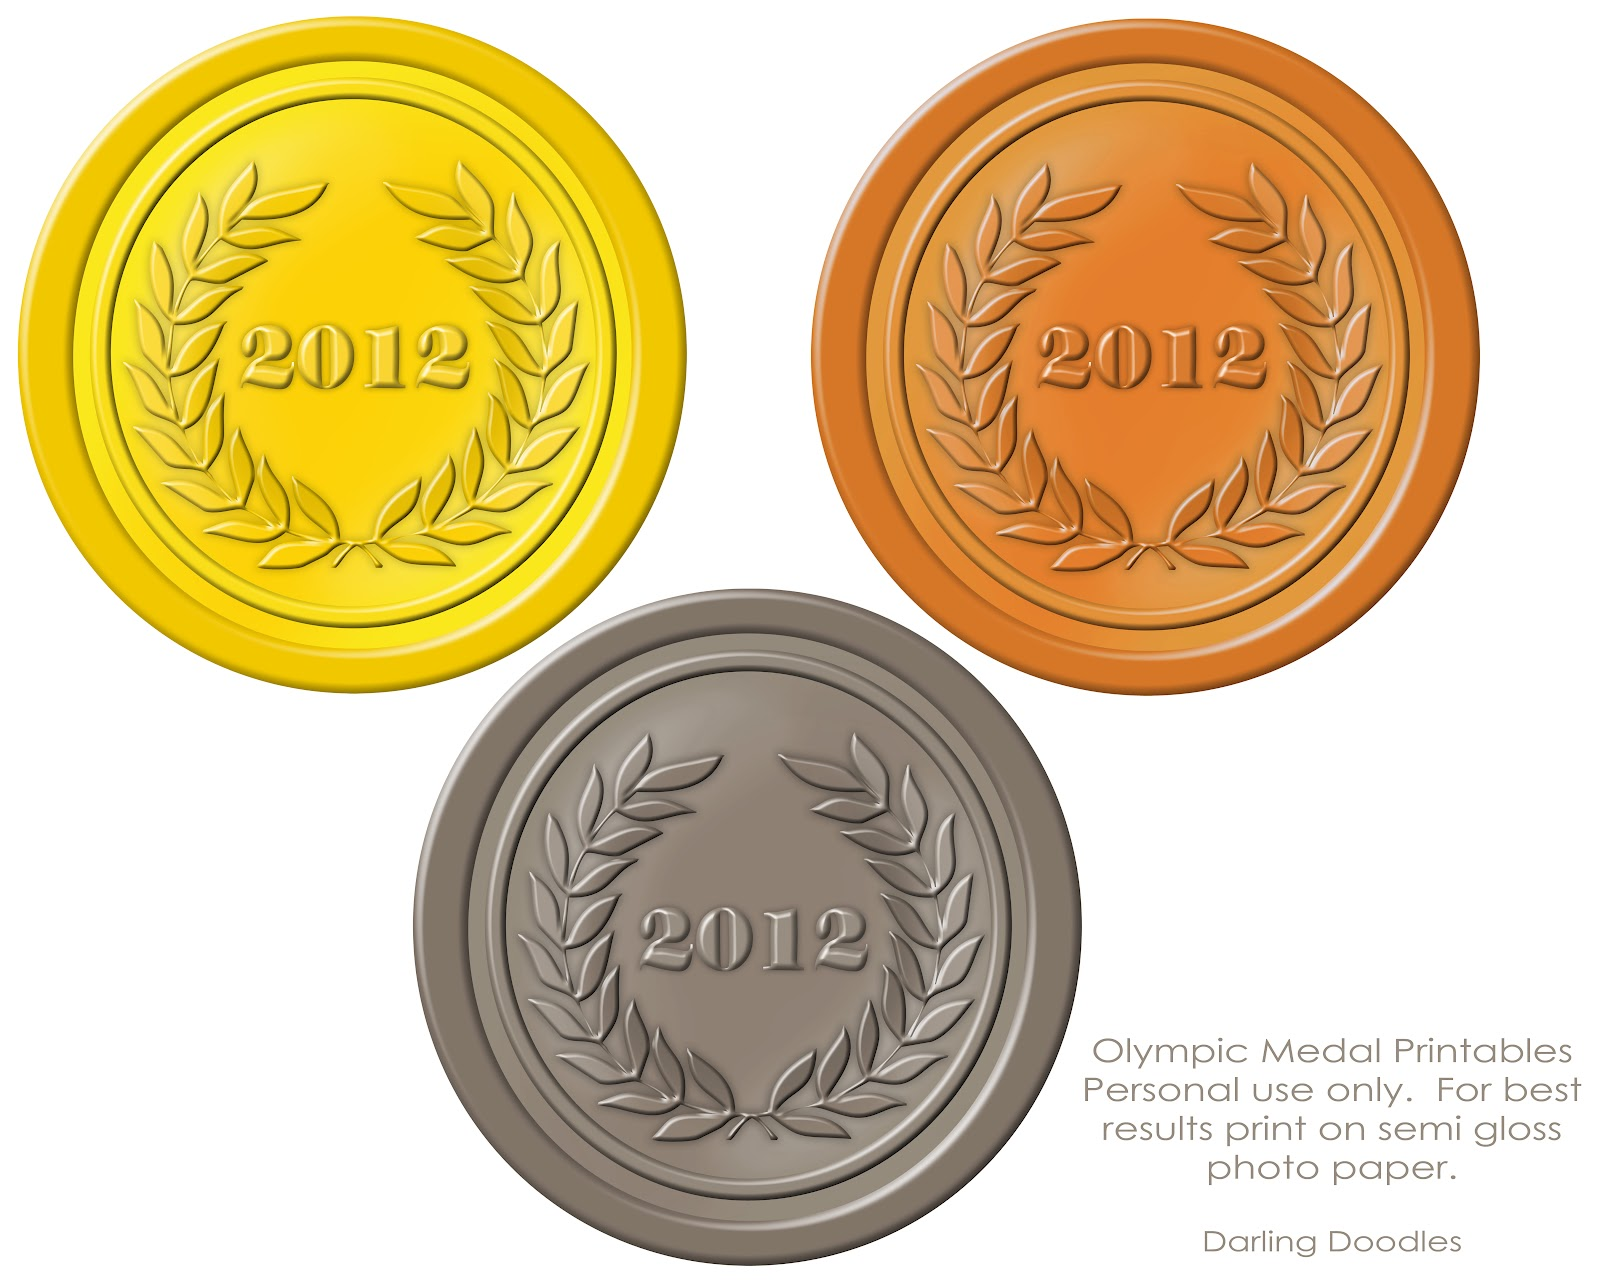 picture about Printable Medals named Olympic Printables - Darling Doodles